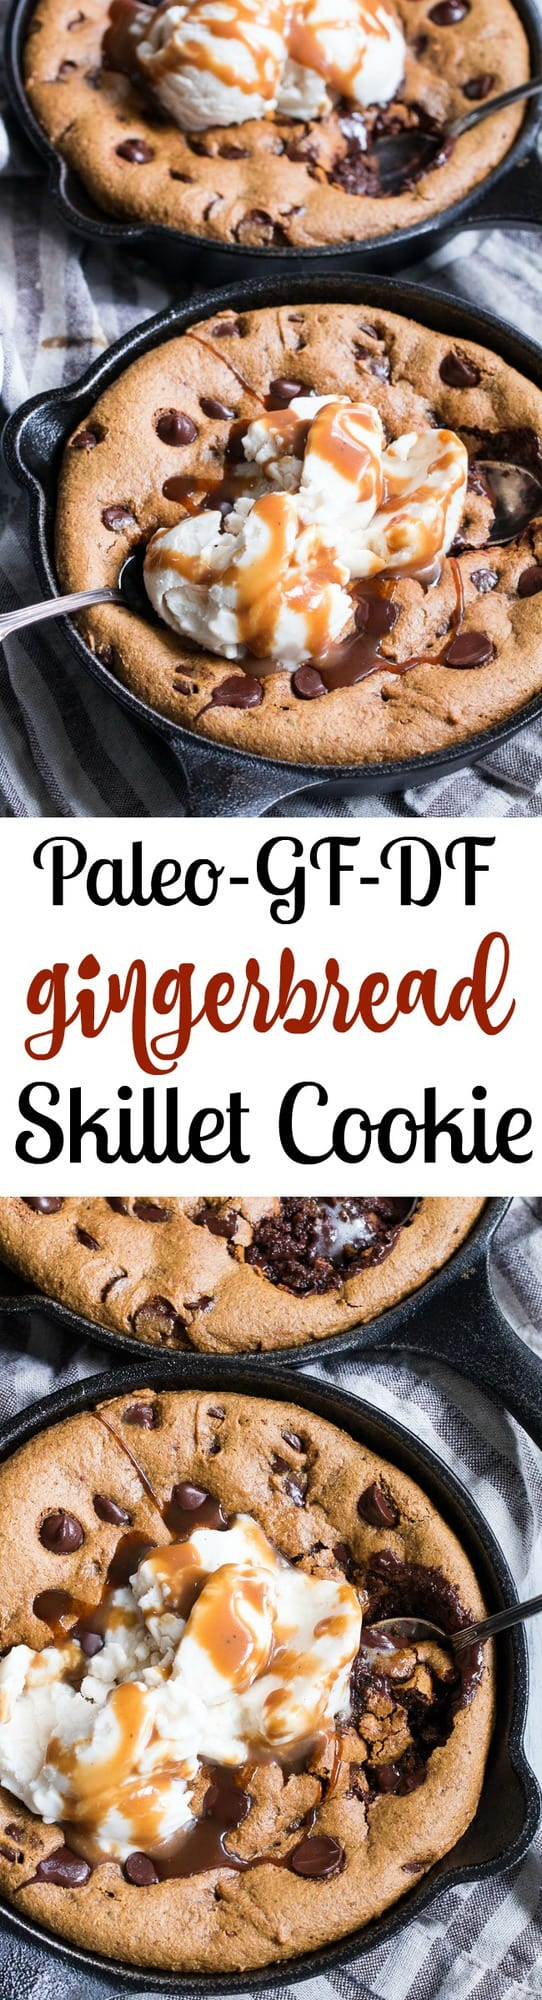 This fudgy gingerbread chocolate chip skillet cookie is out-of-this-world delicious.   Made with coconut flour and almond butter for the perfect dense, chewy texture, spiced just right and sweetened with coconut sugar and molasses.  Coconut vanilla ice cream and dairy-free salted caramel to top makes this dessert perfectly decadent for the holidays or anytime!